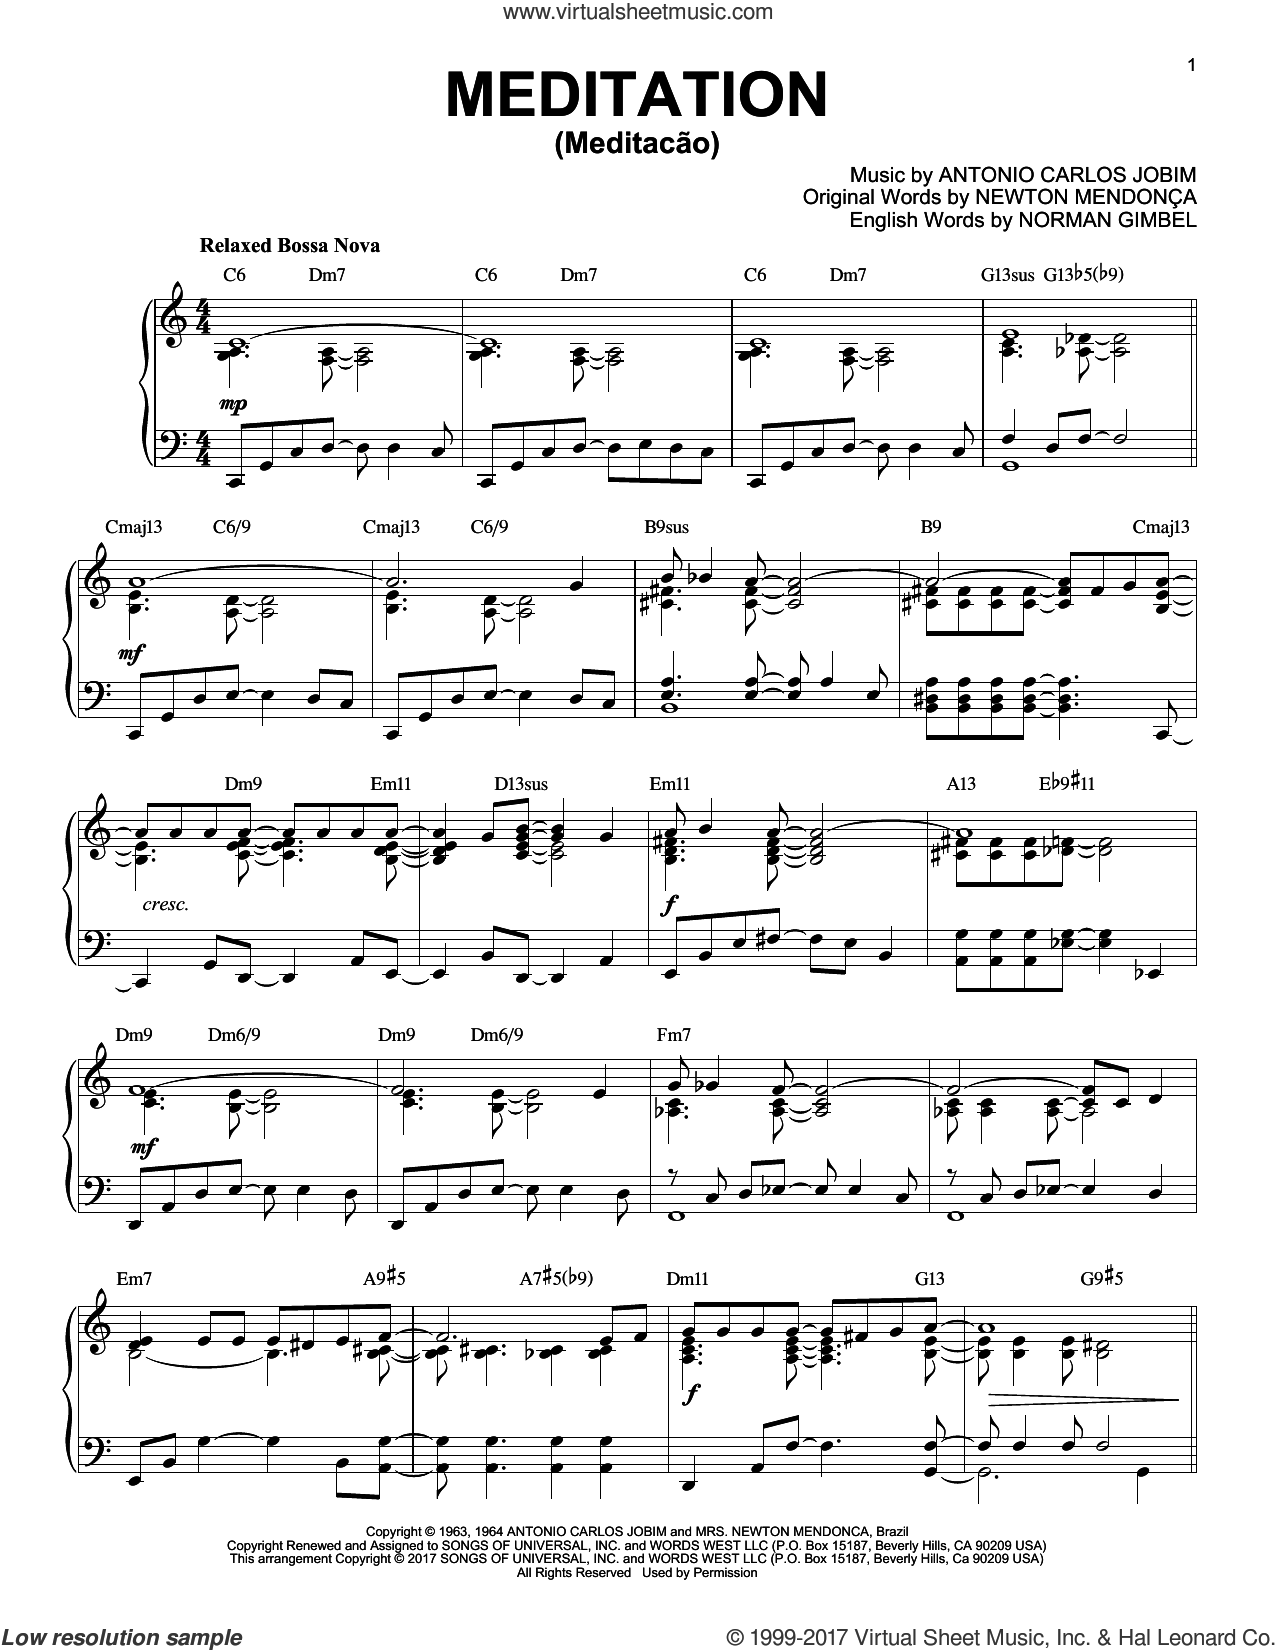 Meditation (Meditacao) [Jazz version] sheet music for piano solo by Norman Gimbel, Charlie Byrd w/The Walter Raim Strings, Antonio Carlos Jobim, Newton Mendonça and Newton Mendonca, intermediate skill level